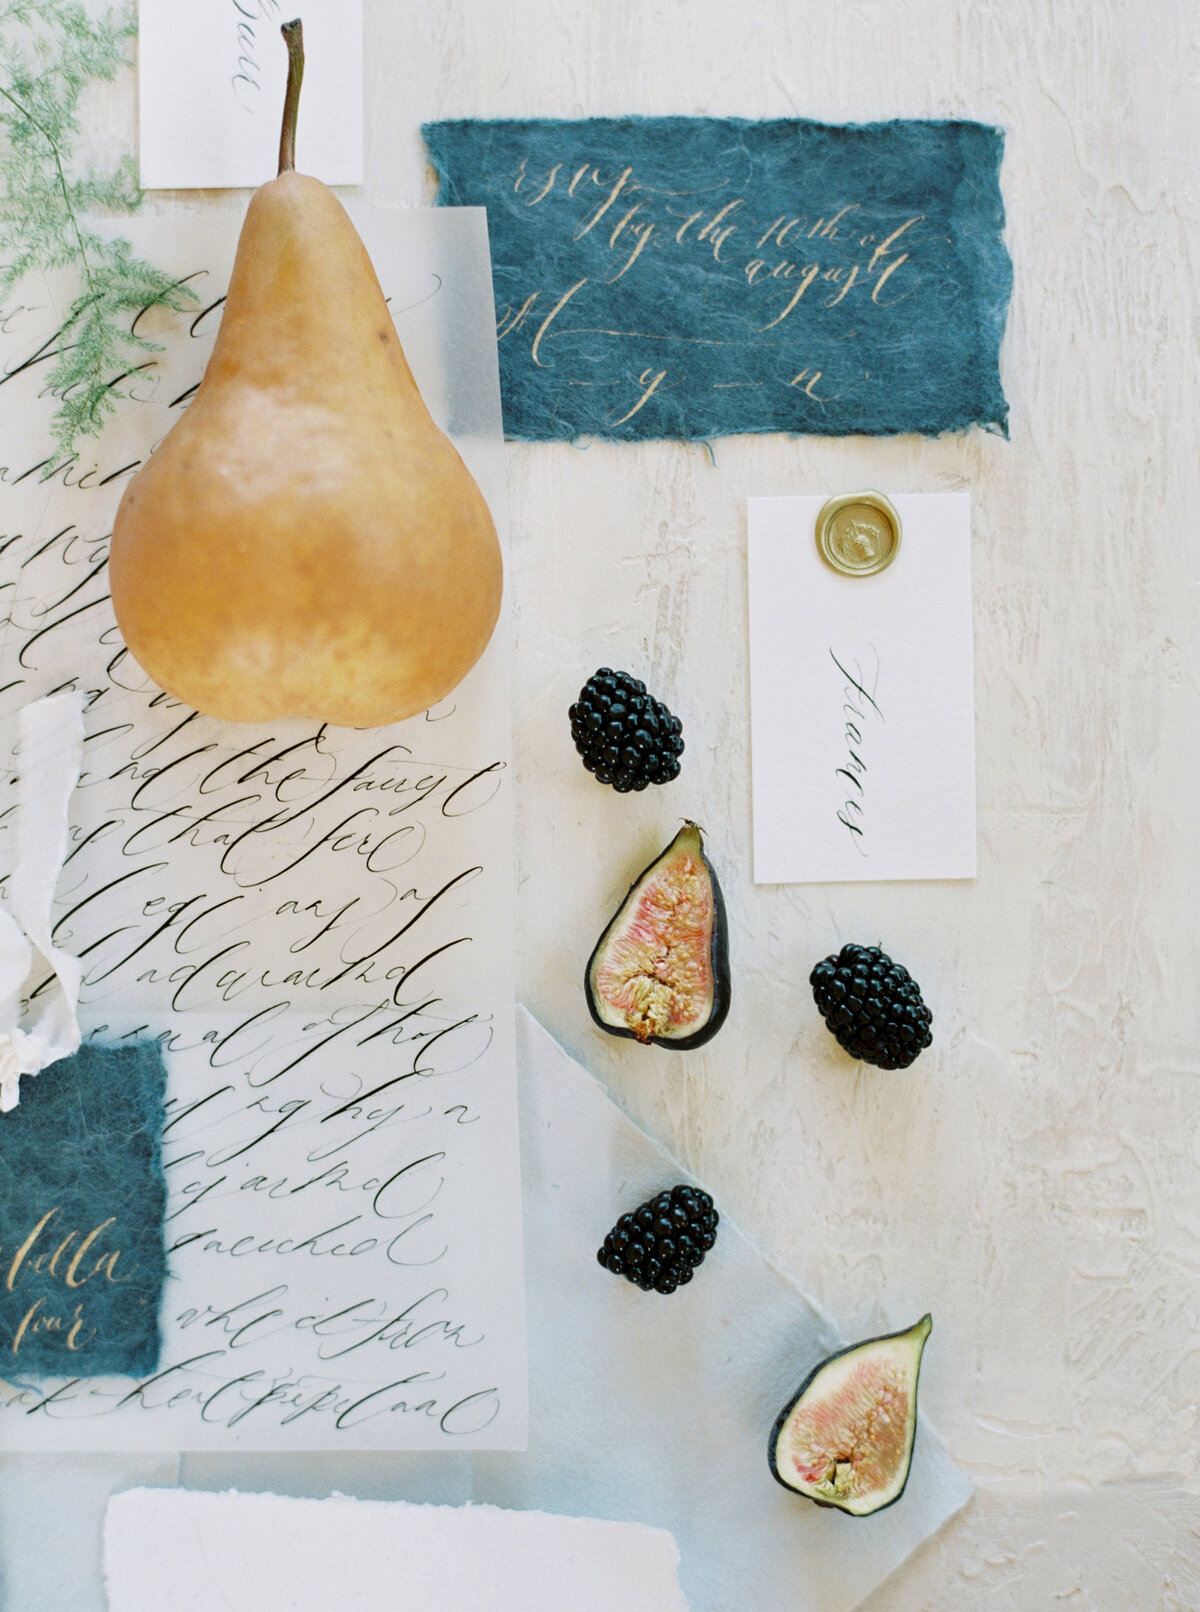 Allora & Ivy Event Co |  Dallas Wedding Planners & Event Designers | Navy & Gold Editorial Inspiration at The White Sparrow